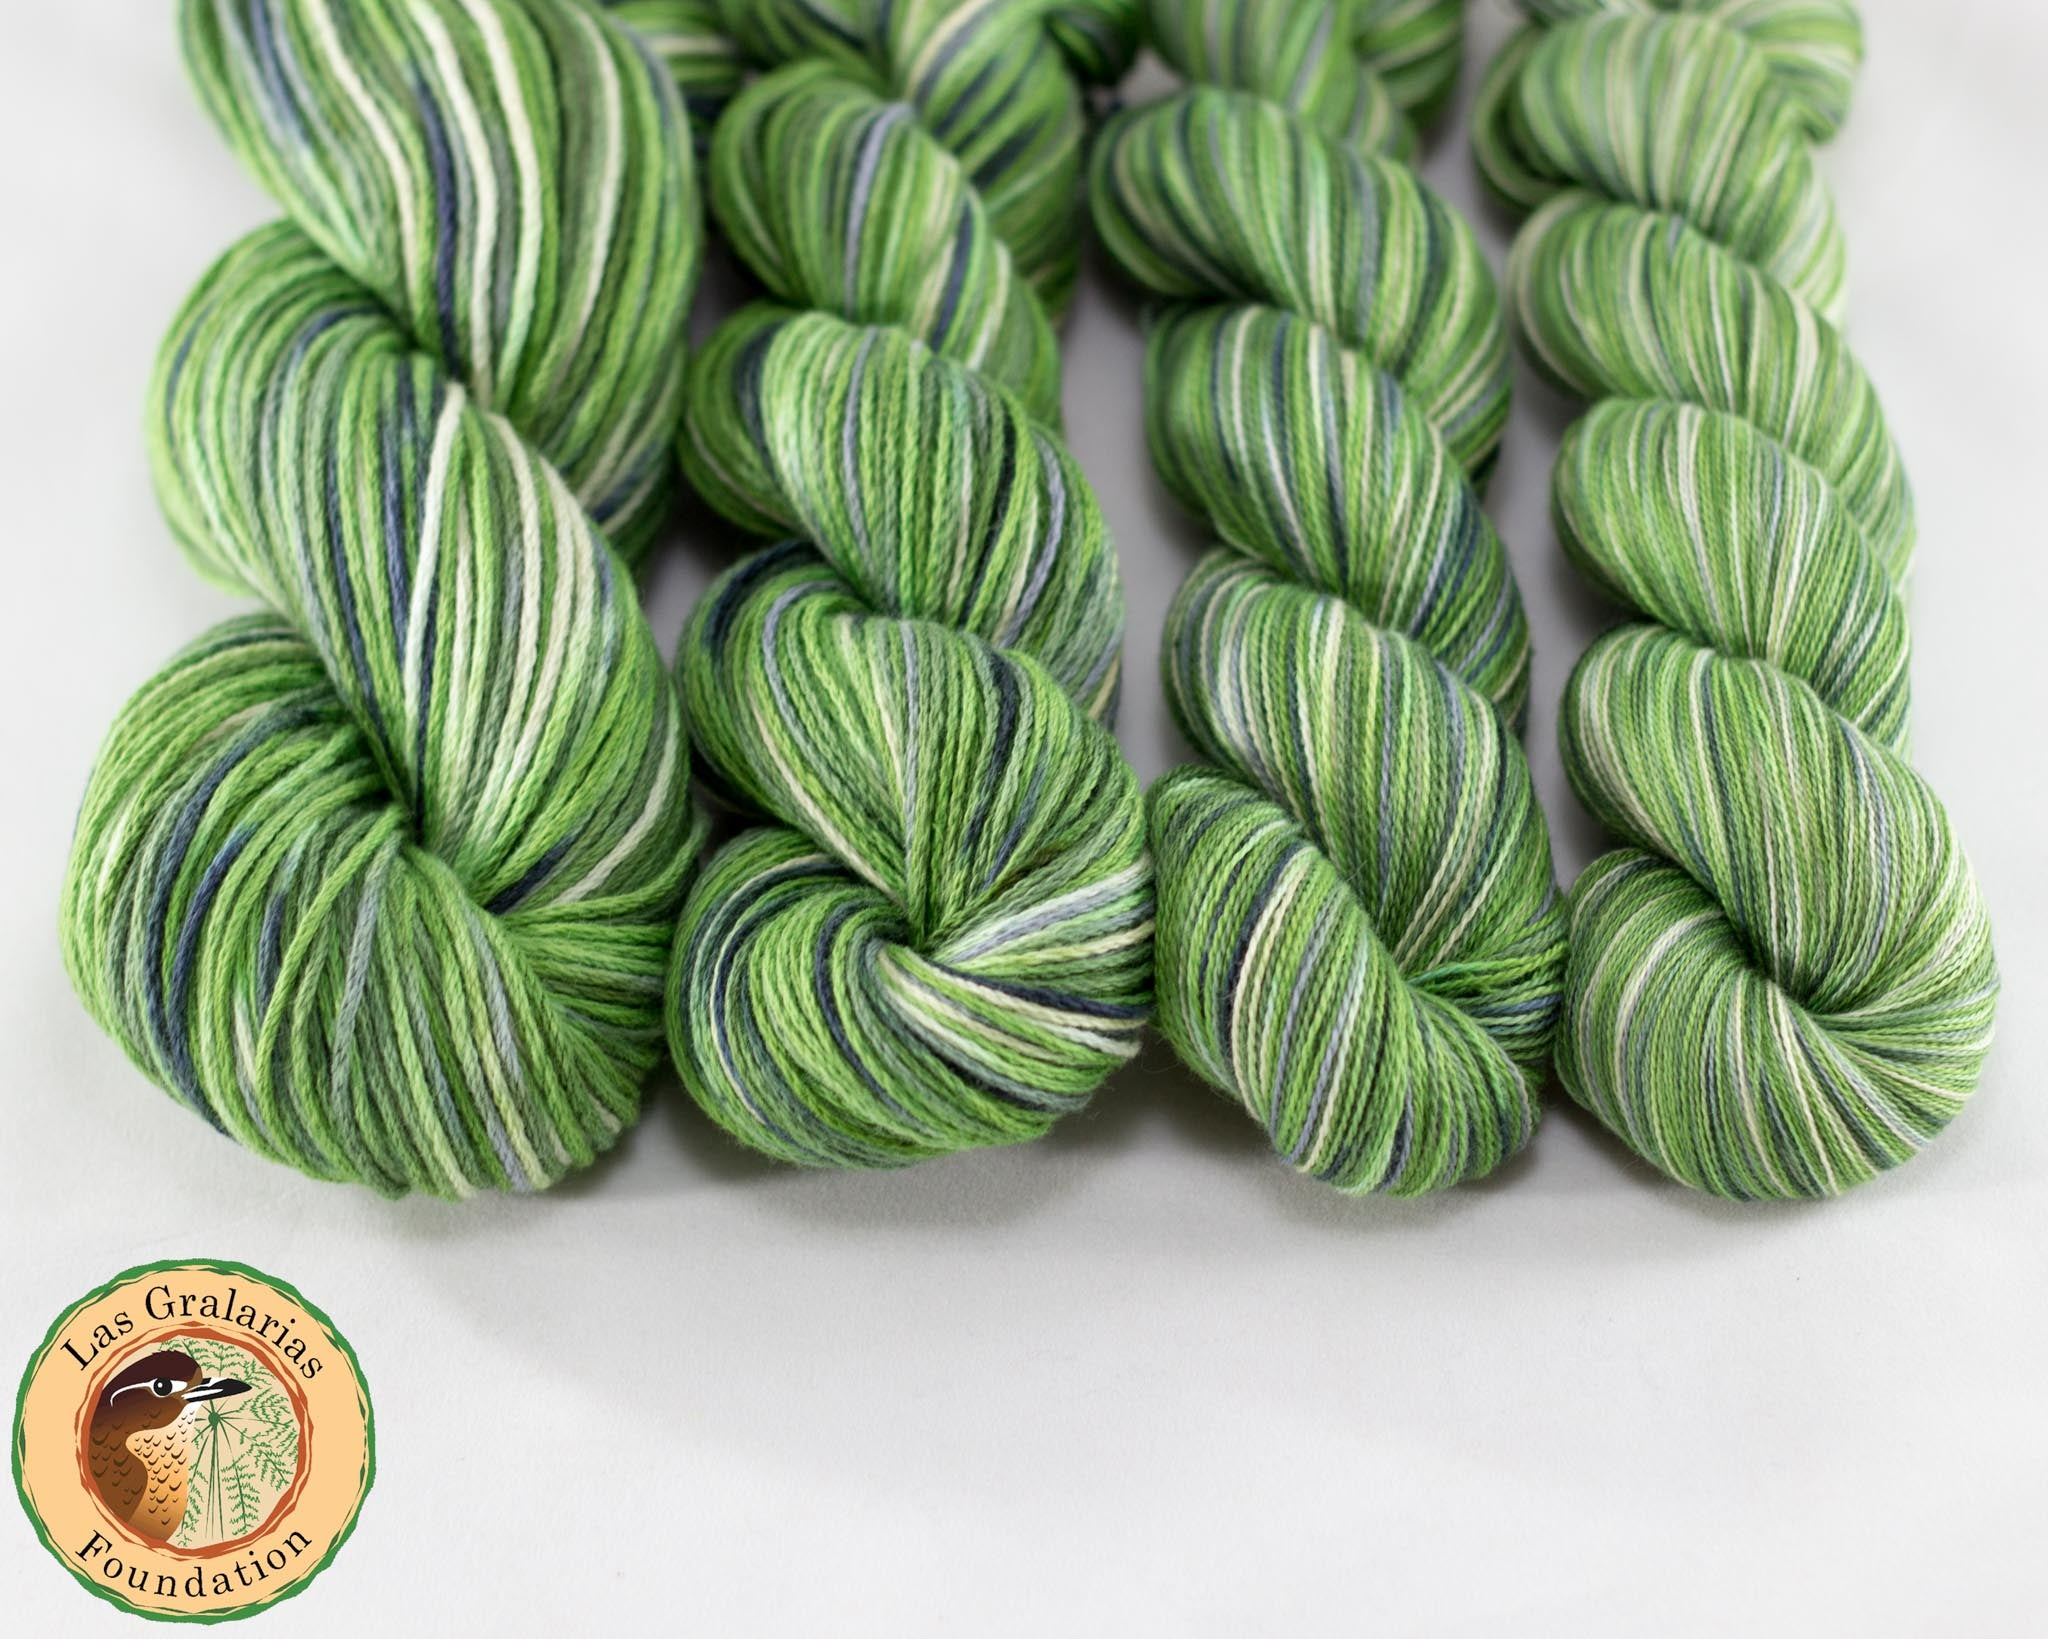 Organic & Fair Trade Cotton Yarn-Green, Grey, and Yellow